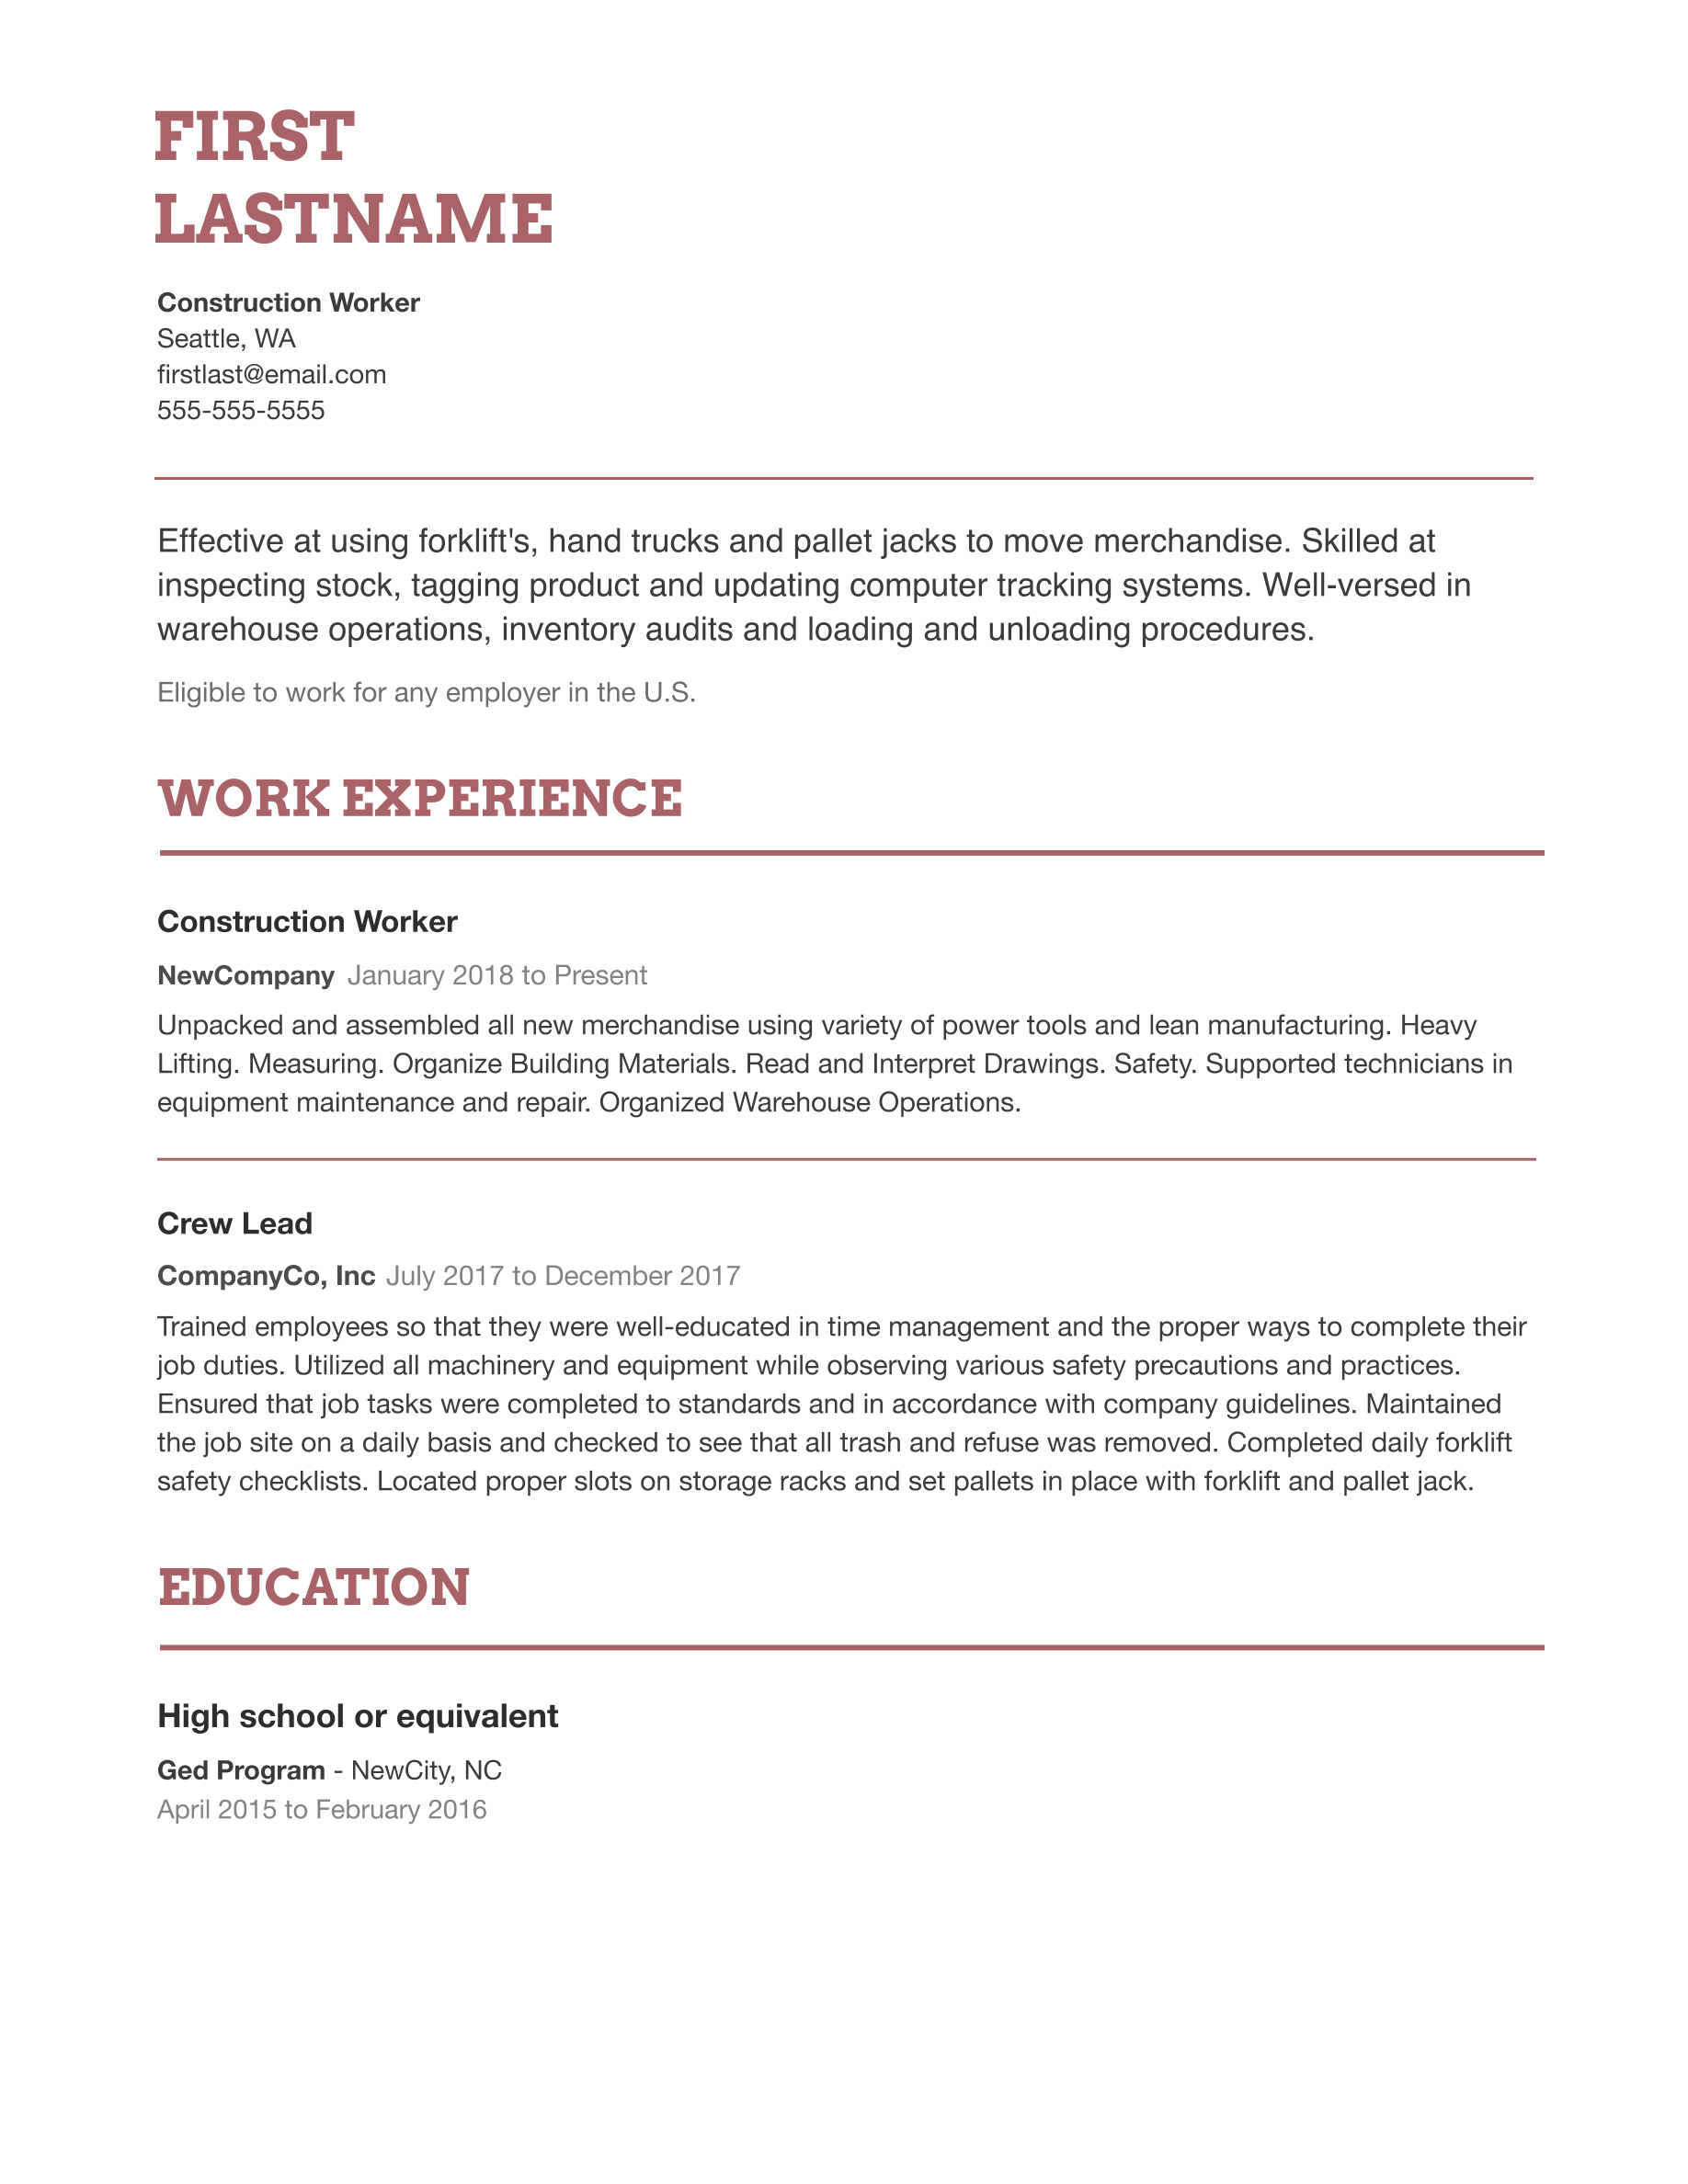 Free professional resume templates RESUME(s) Free